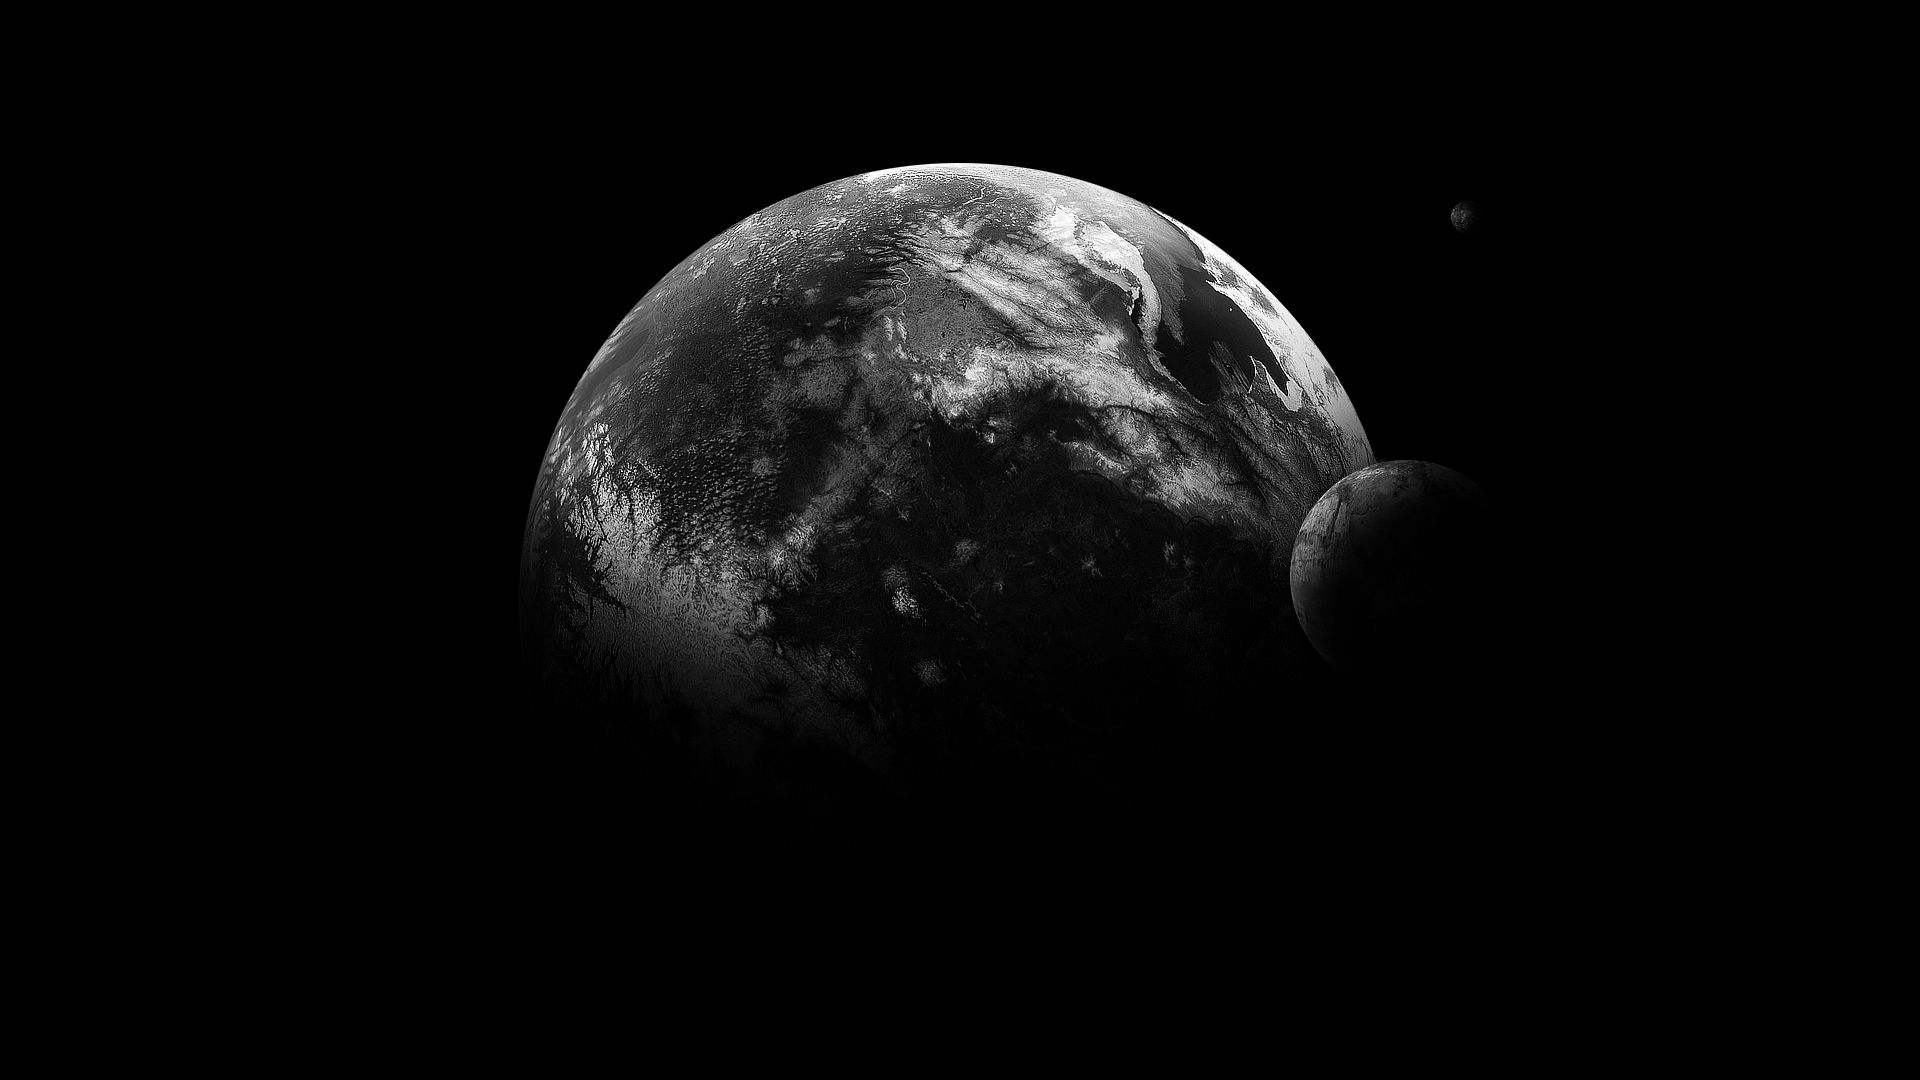 Black Earth Wallpapers Top Free Black Earth Backgrounds Wallpaperaccess